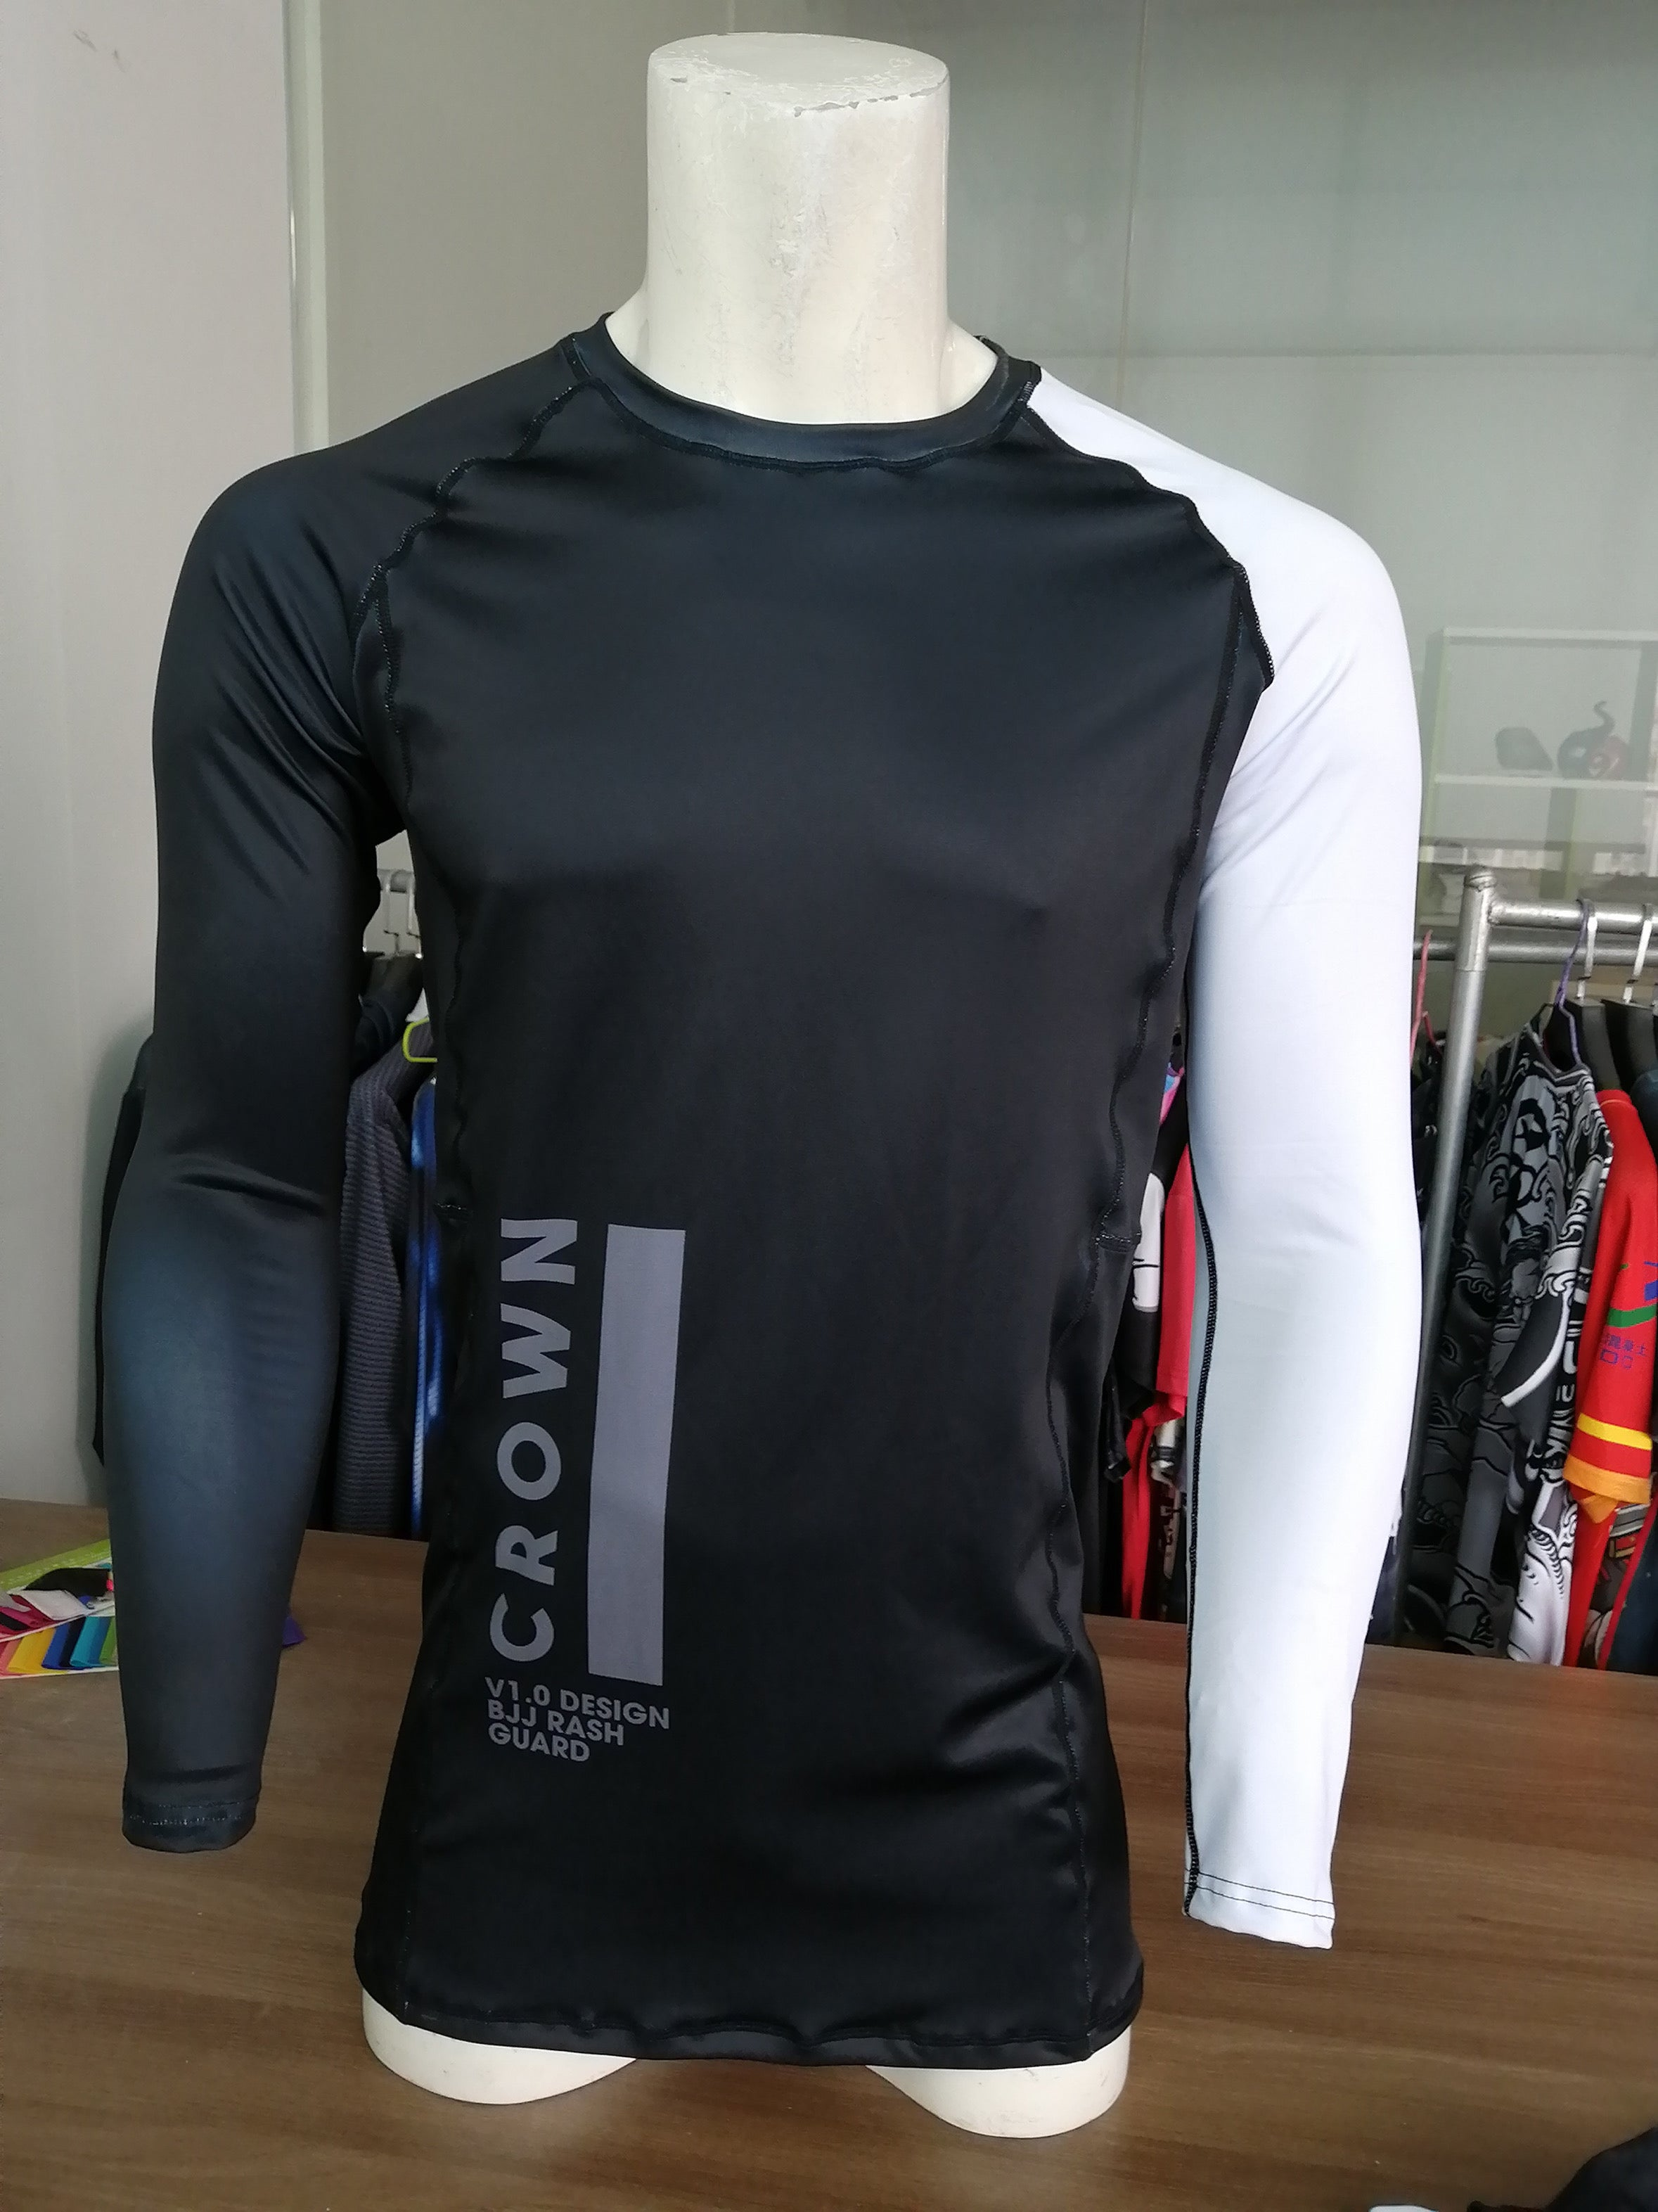 Actual prototype of the V1.0 long sleeve rash guard, but with black stitching.